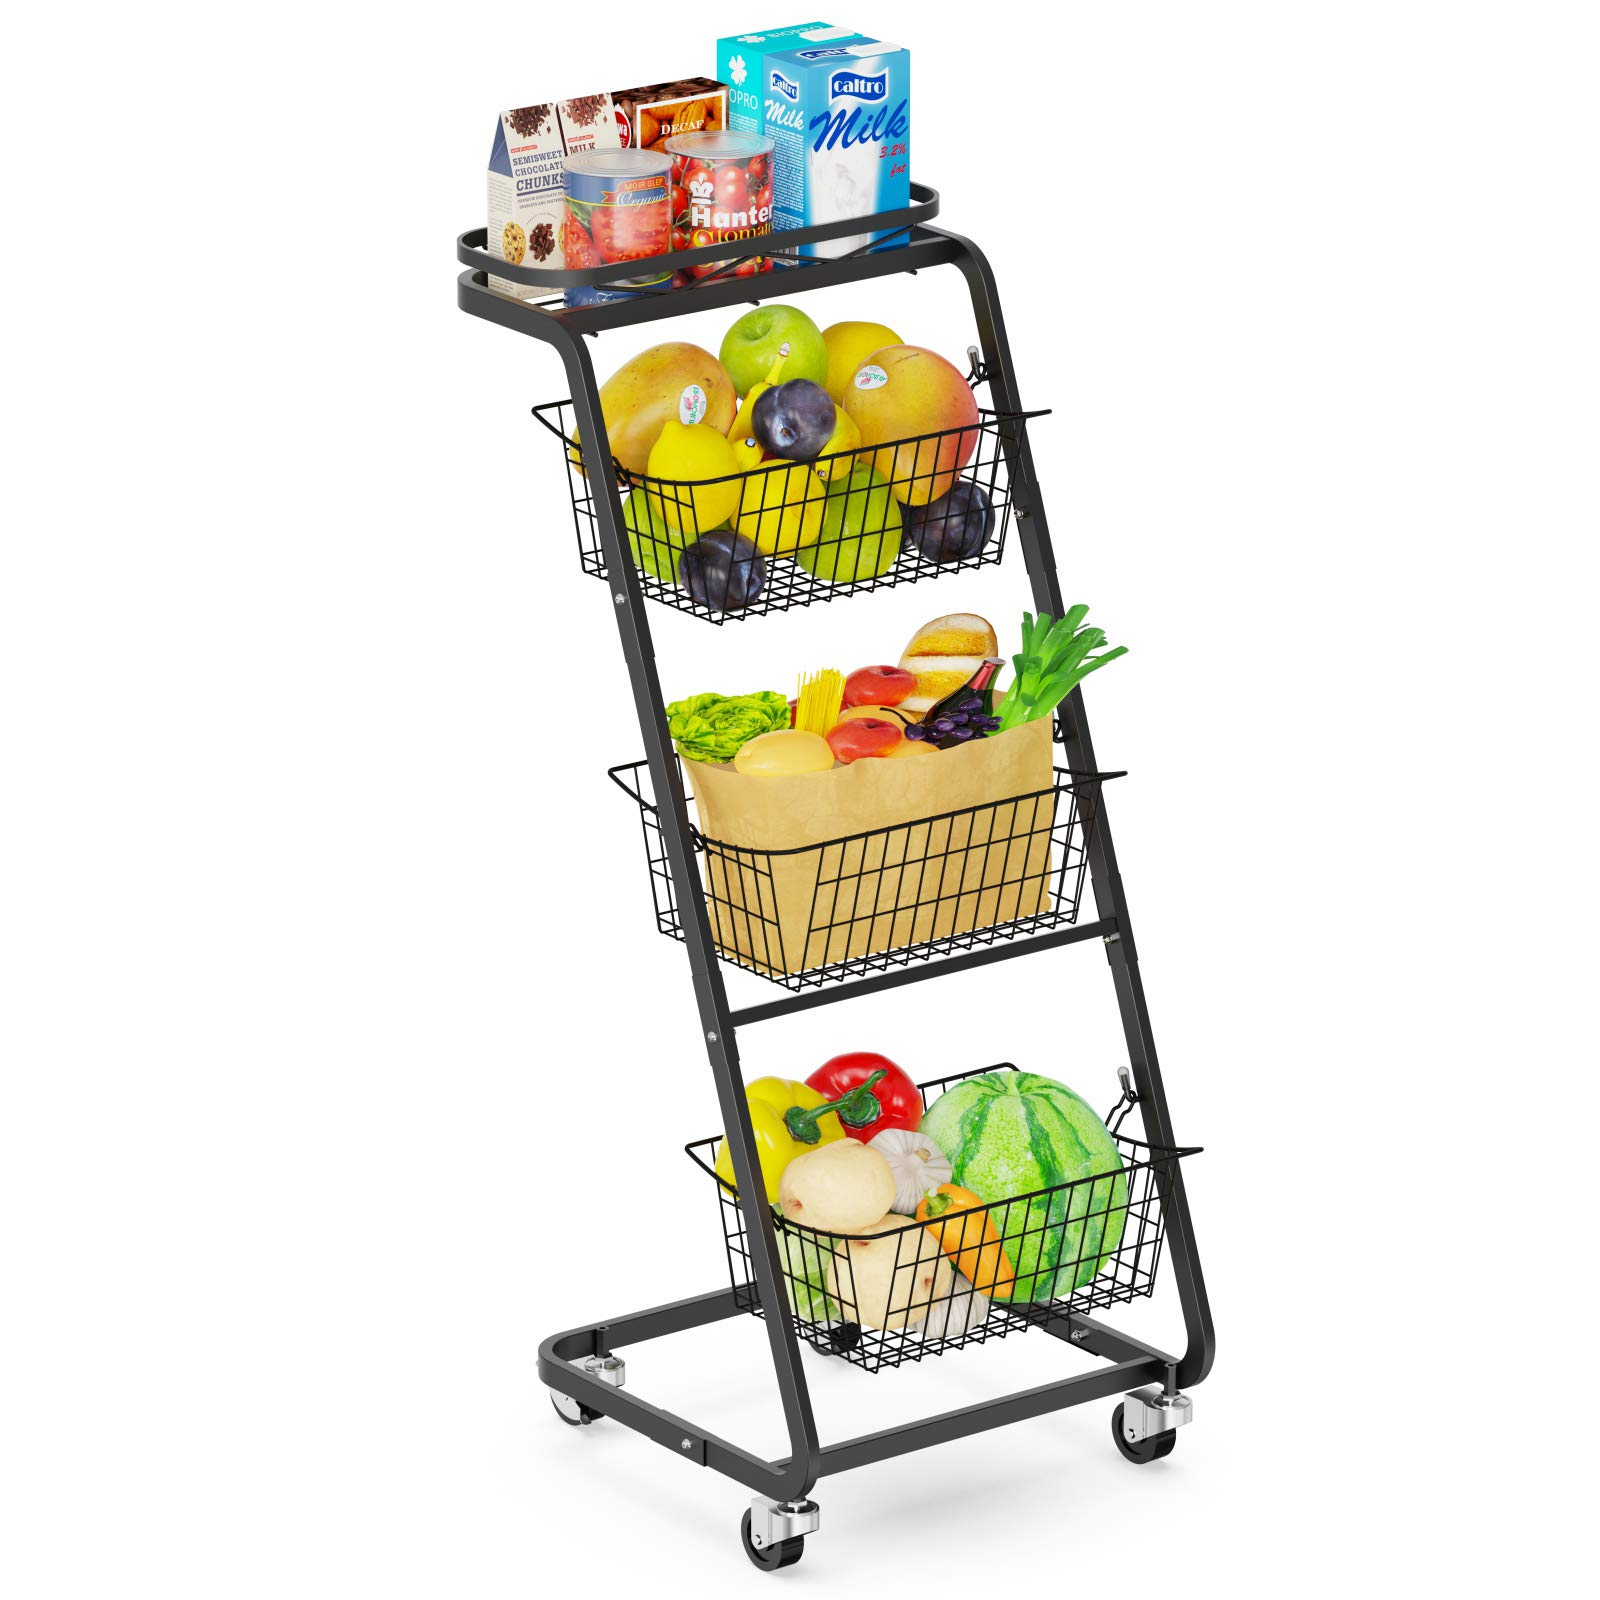 Fruit Basket Veckle 4 Tier Rolling Wire Market Basket Stand with Wheels